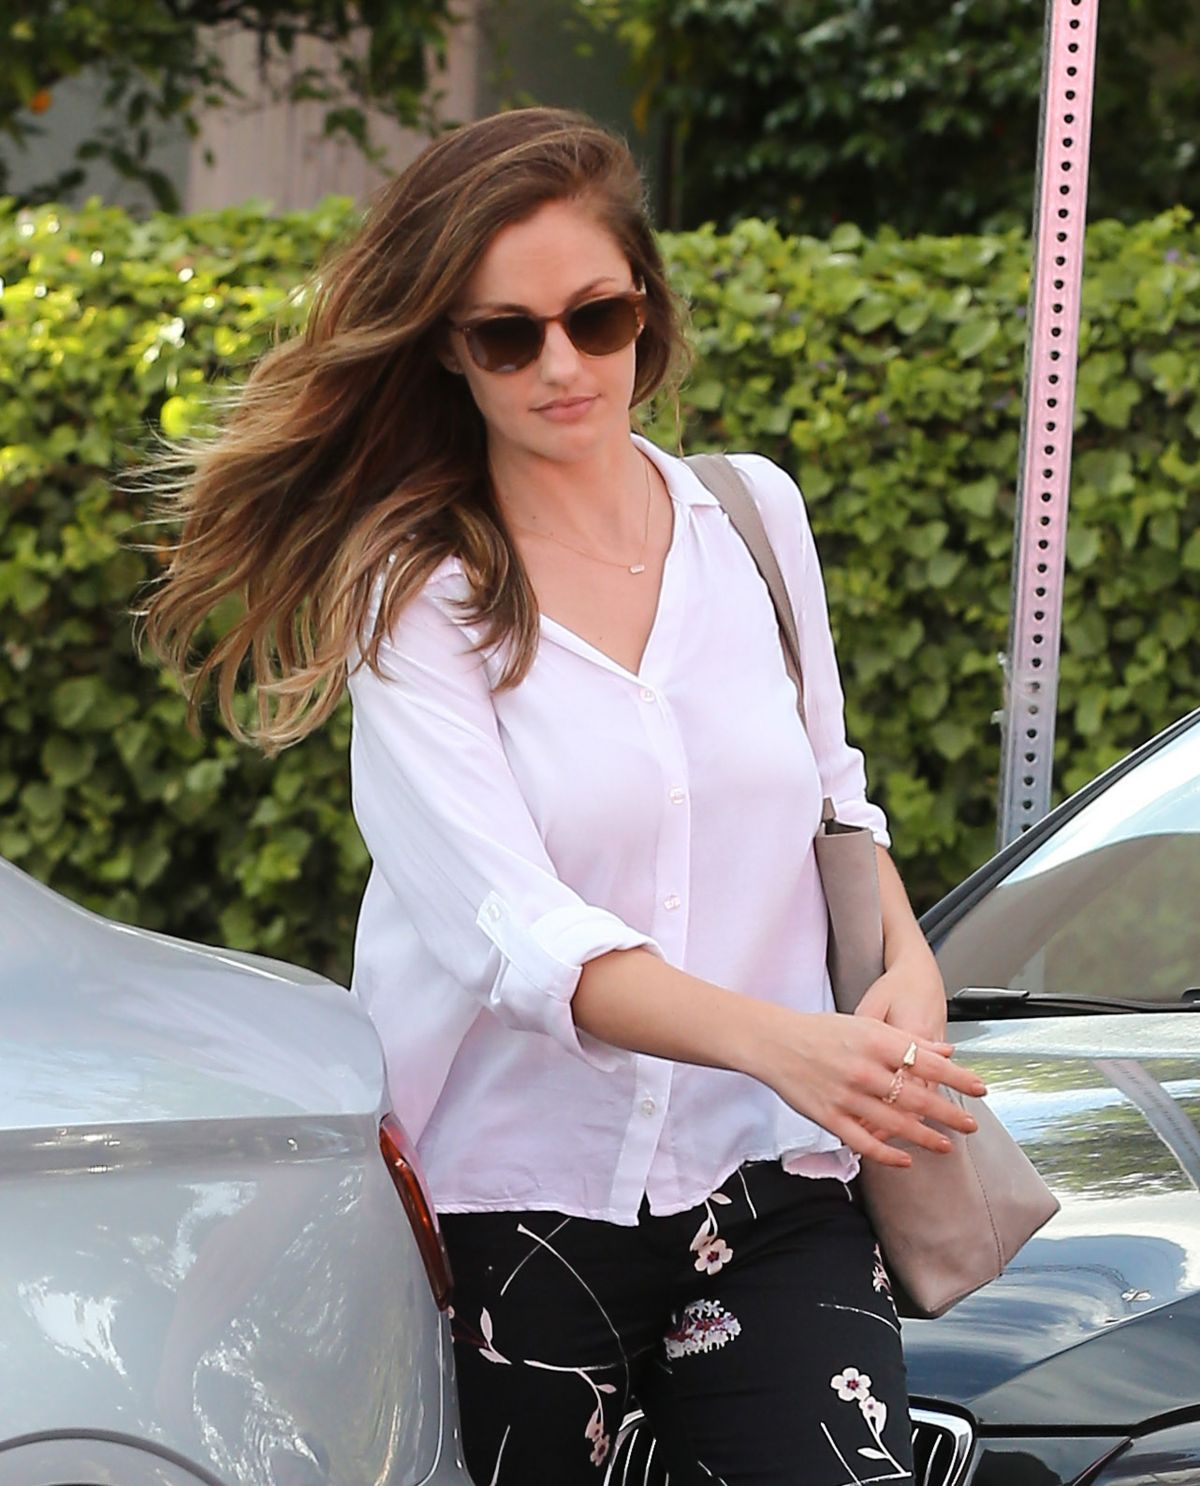 Nail Salons West Los Angeles: MINKA KELLY At Marie Nails Salon In West Hollywood 05/06